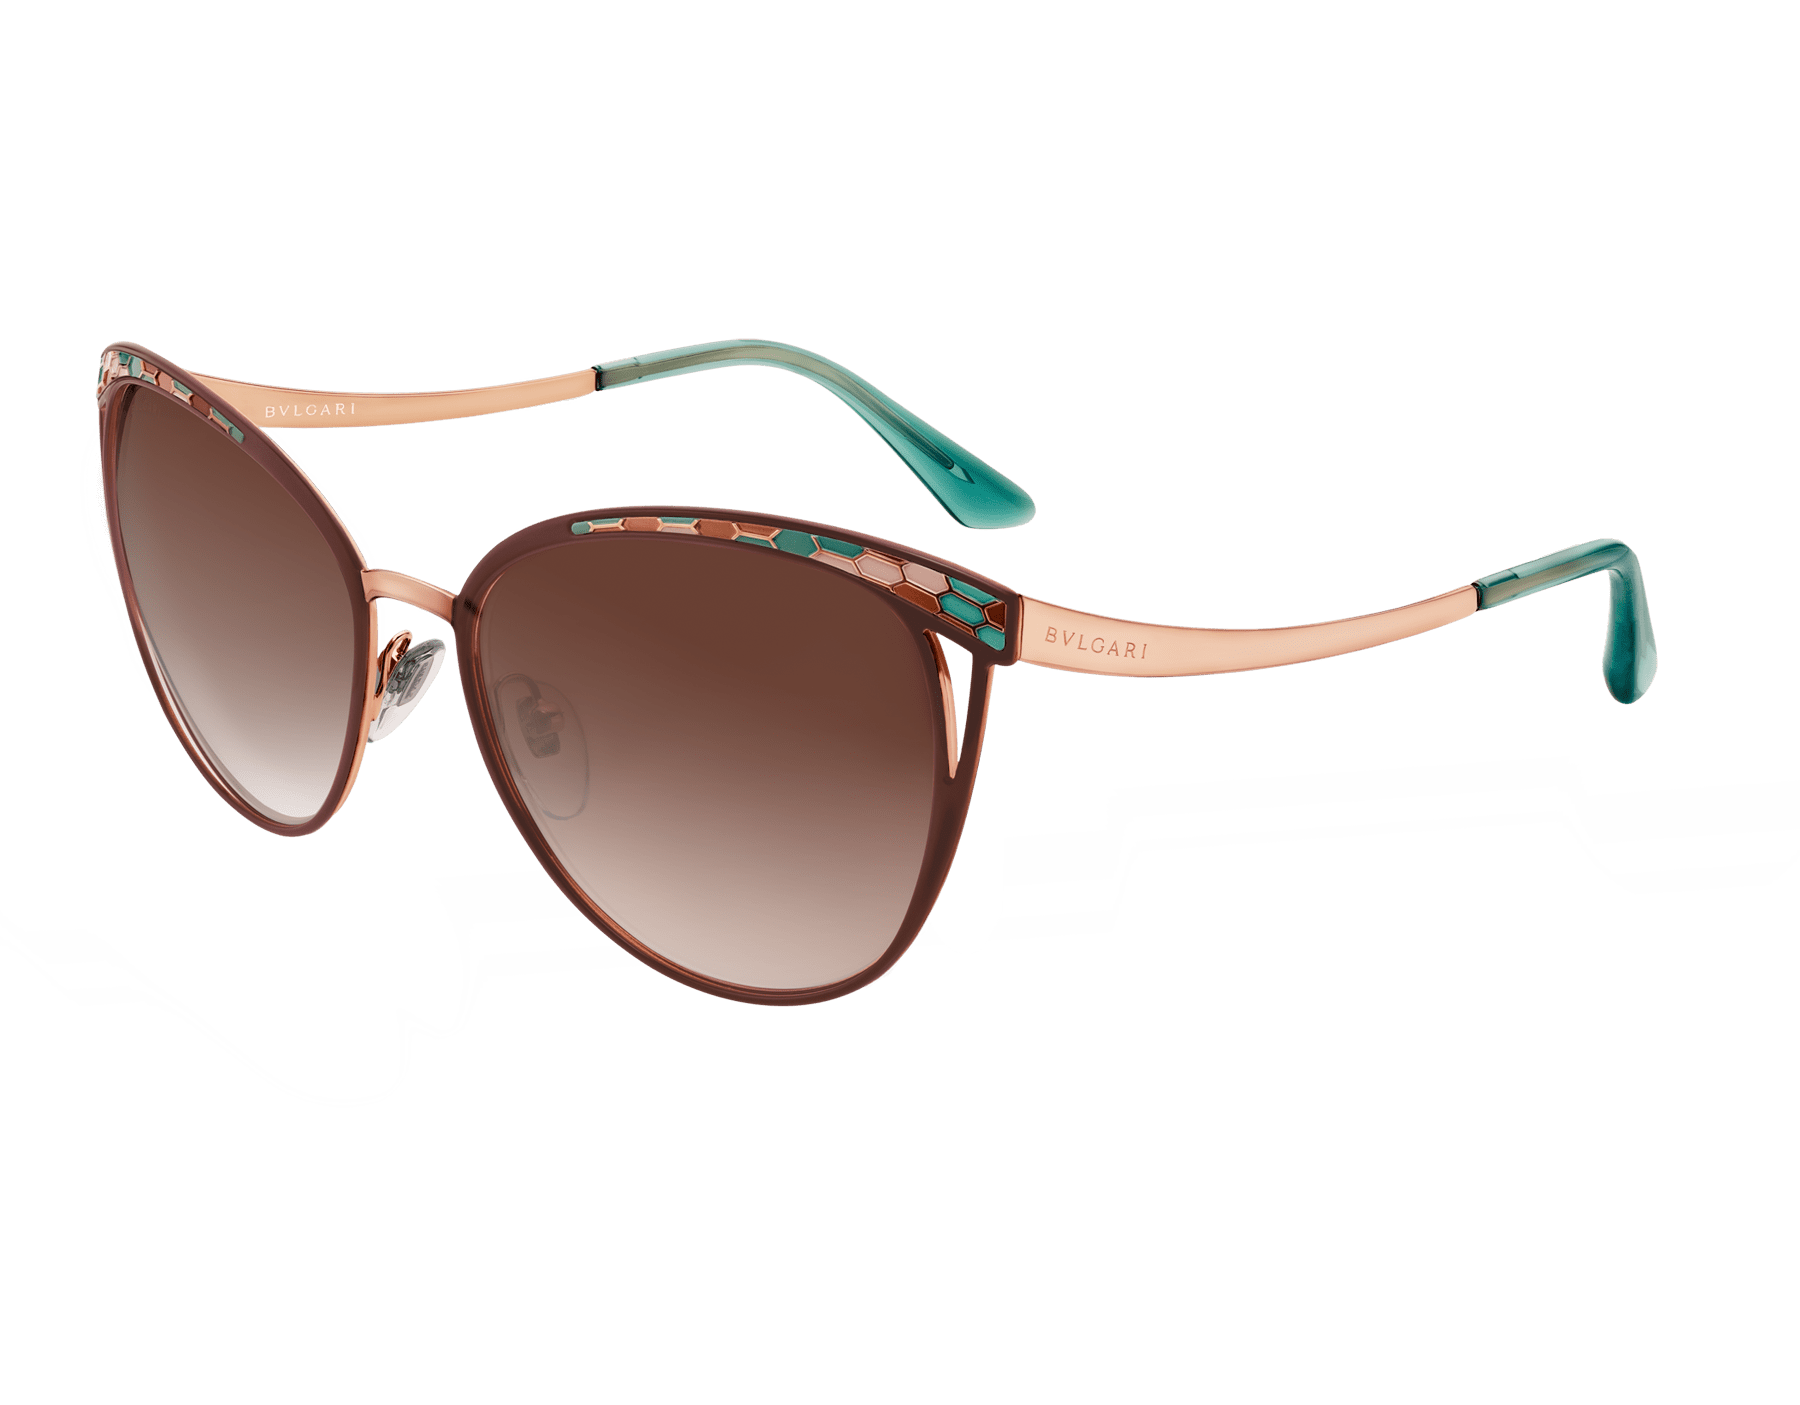 Bulgari Serpenti Serpentine cat-eye metal sunglasses. 903977 image 1